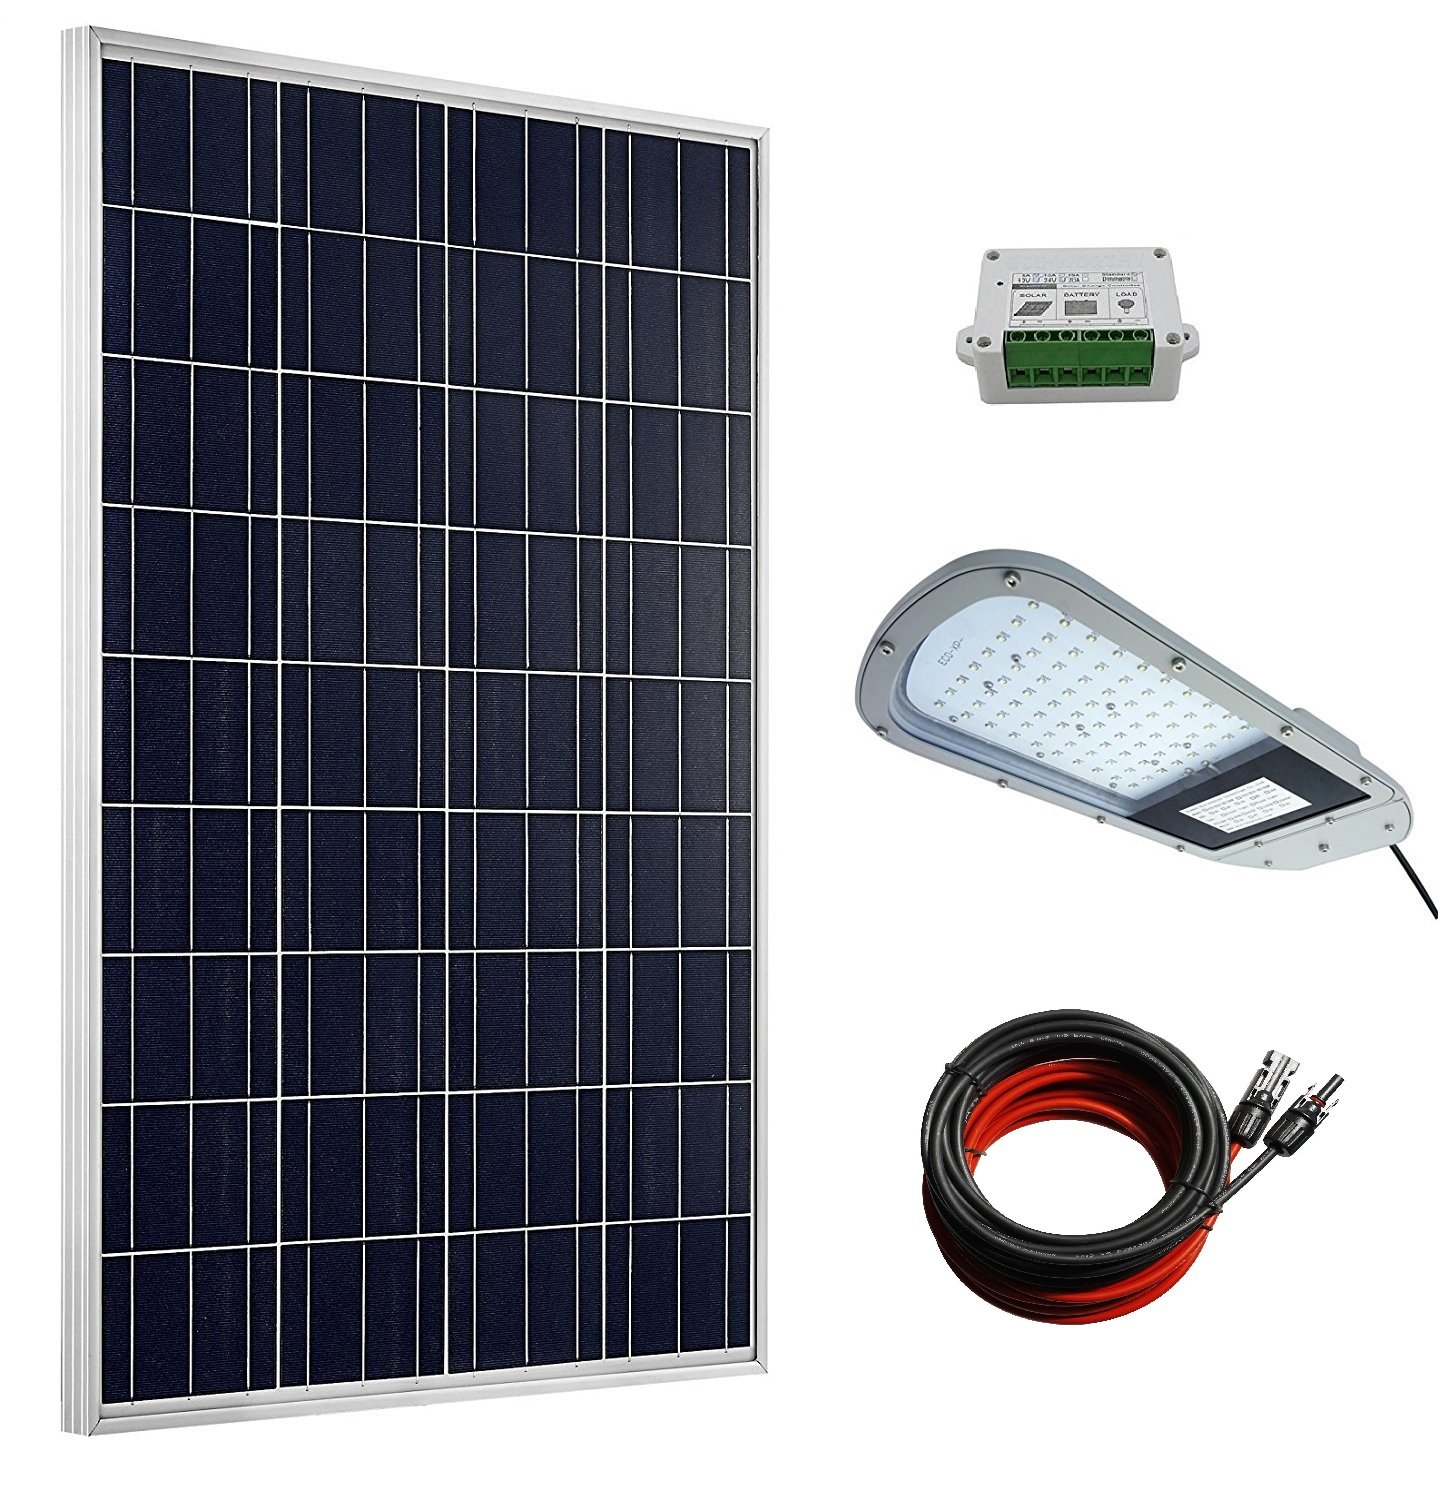 Eco Worthy 100 Watts Poly Solar Panel 20w 12v Led Street Light Circuit Lights India Lighting 15a Charge Controller 2pcs 16ft Cable Adapter For Commercial Area